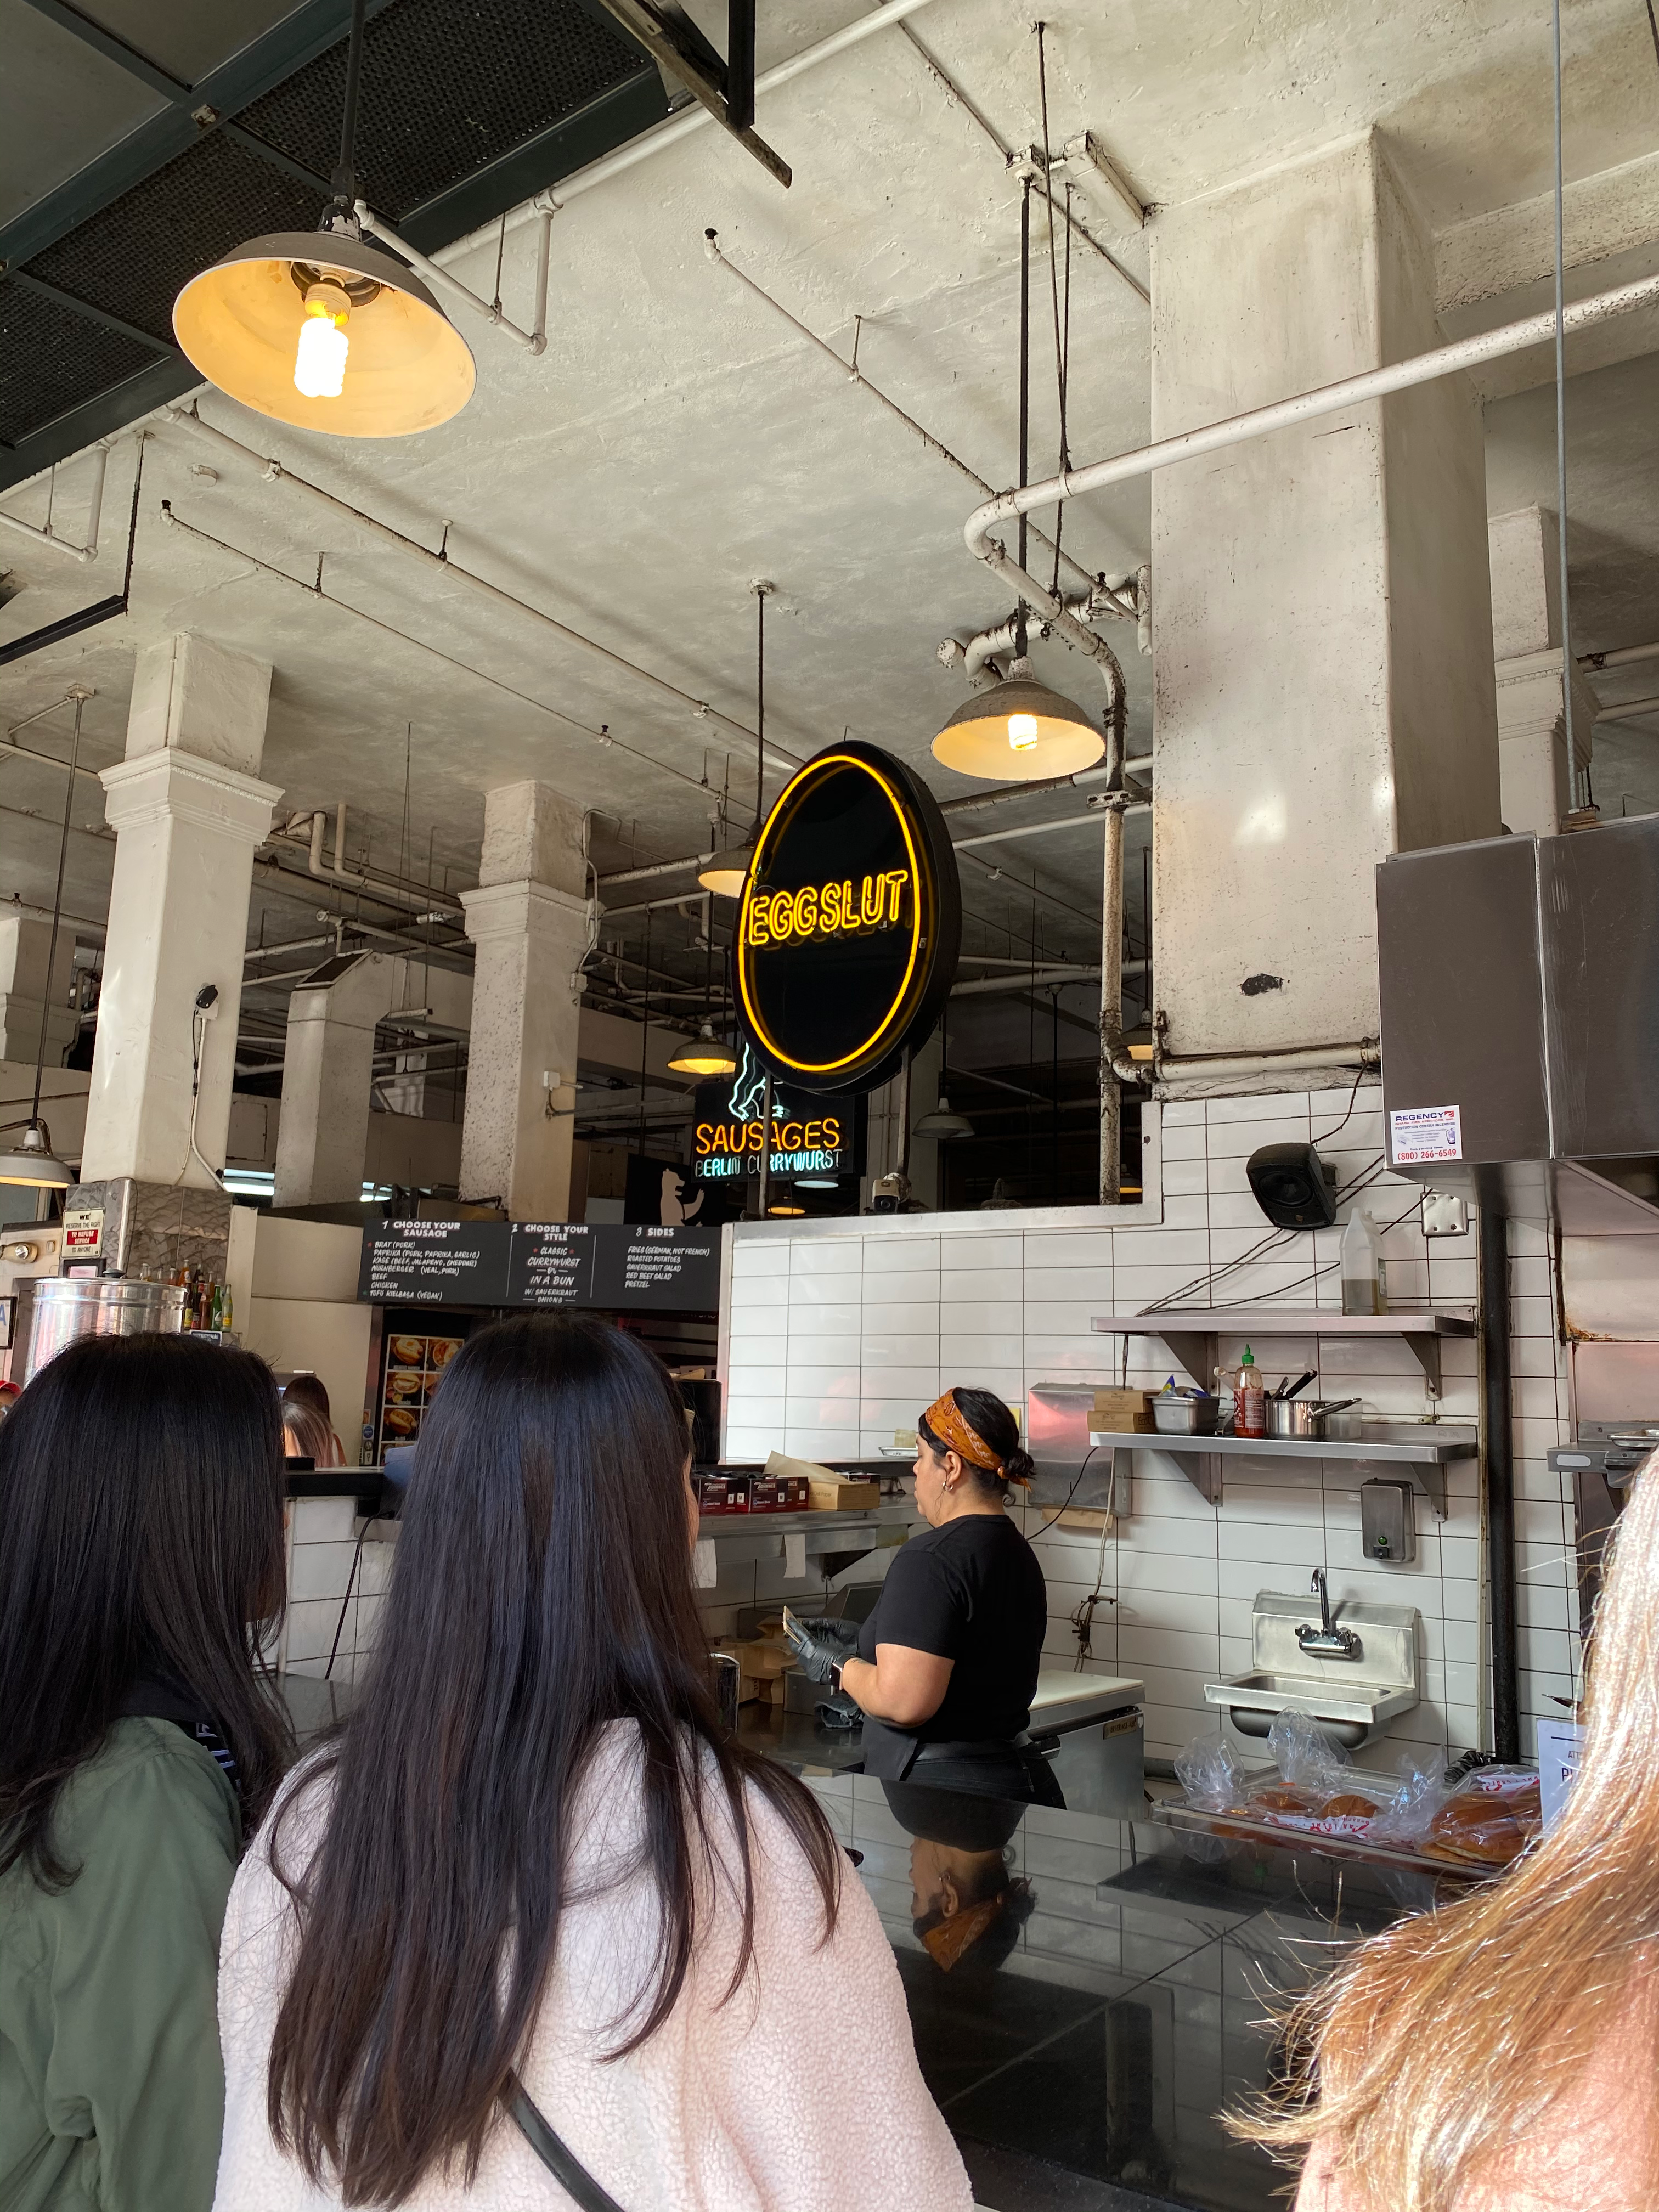 Eggslut booth at Grand Central Market in LA